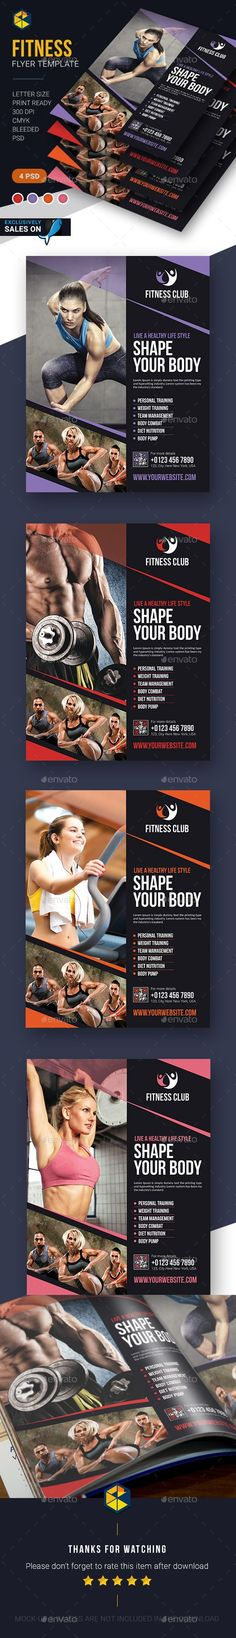 Fitness Flyer Template: